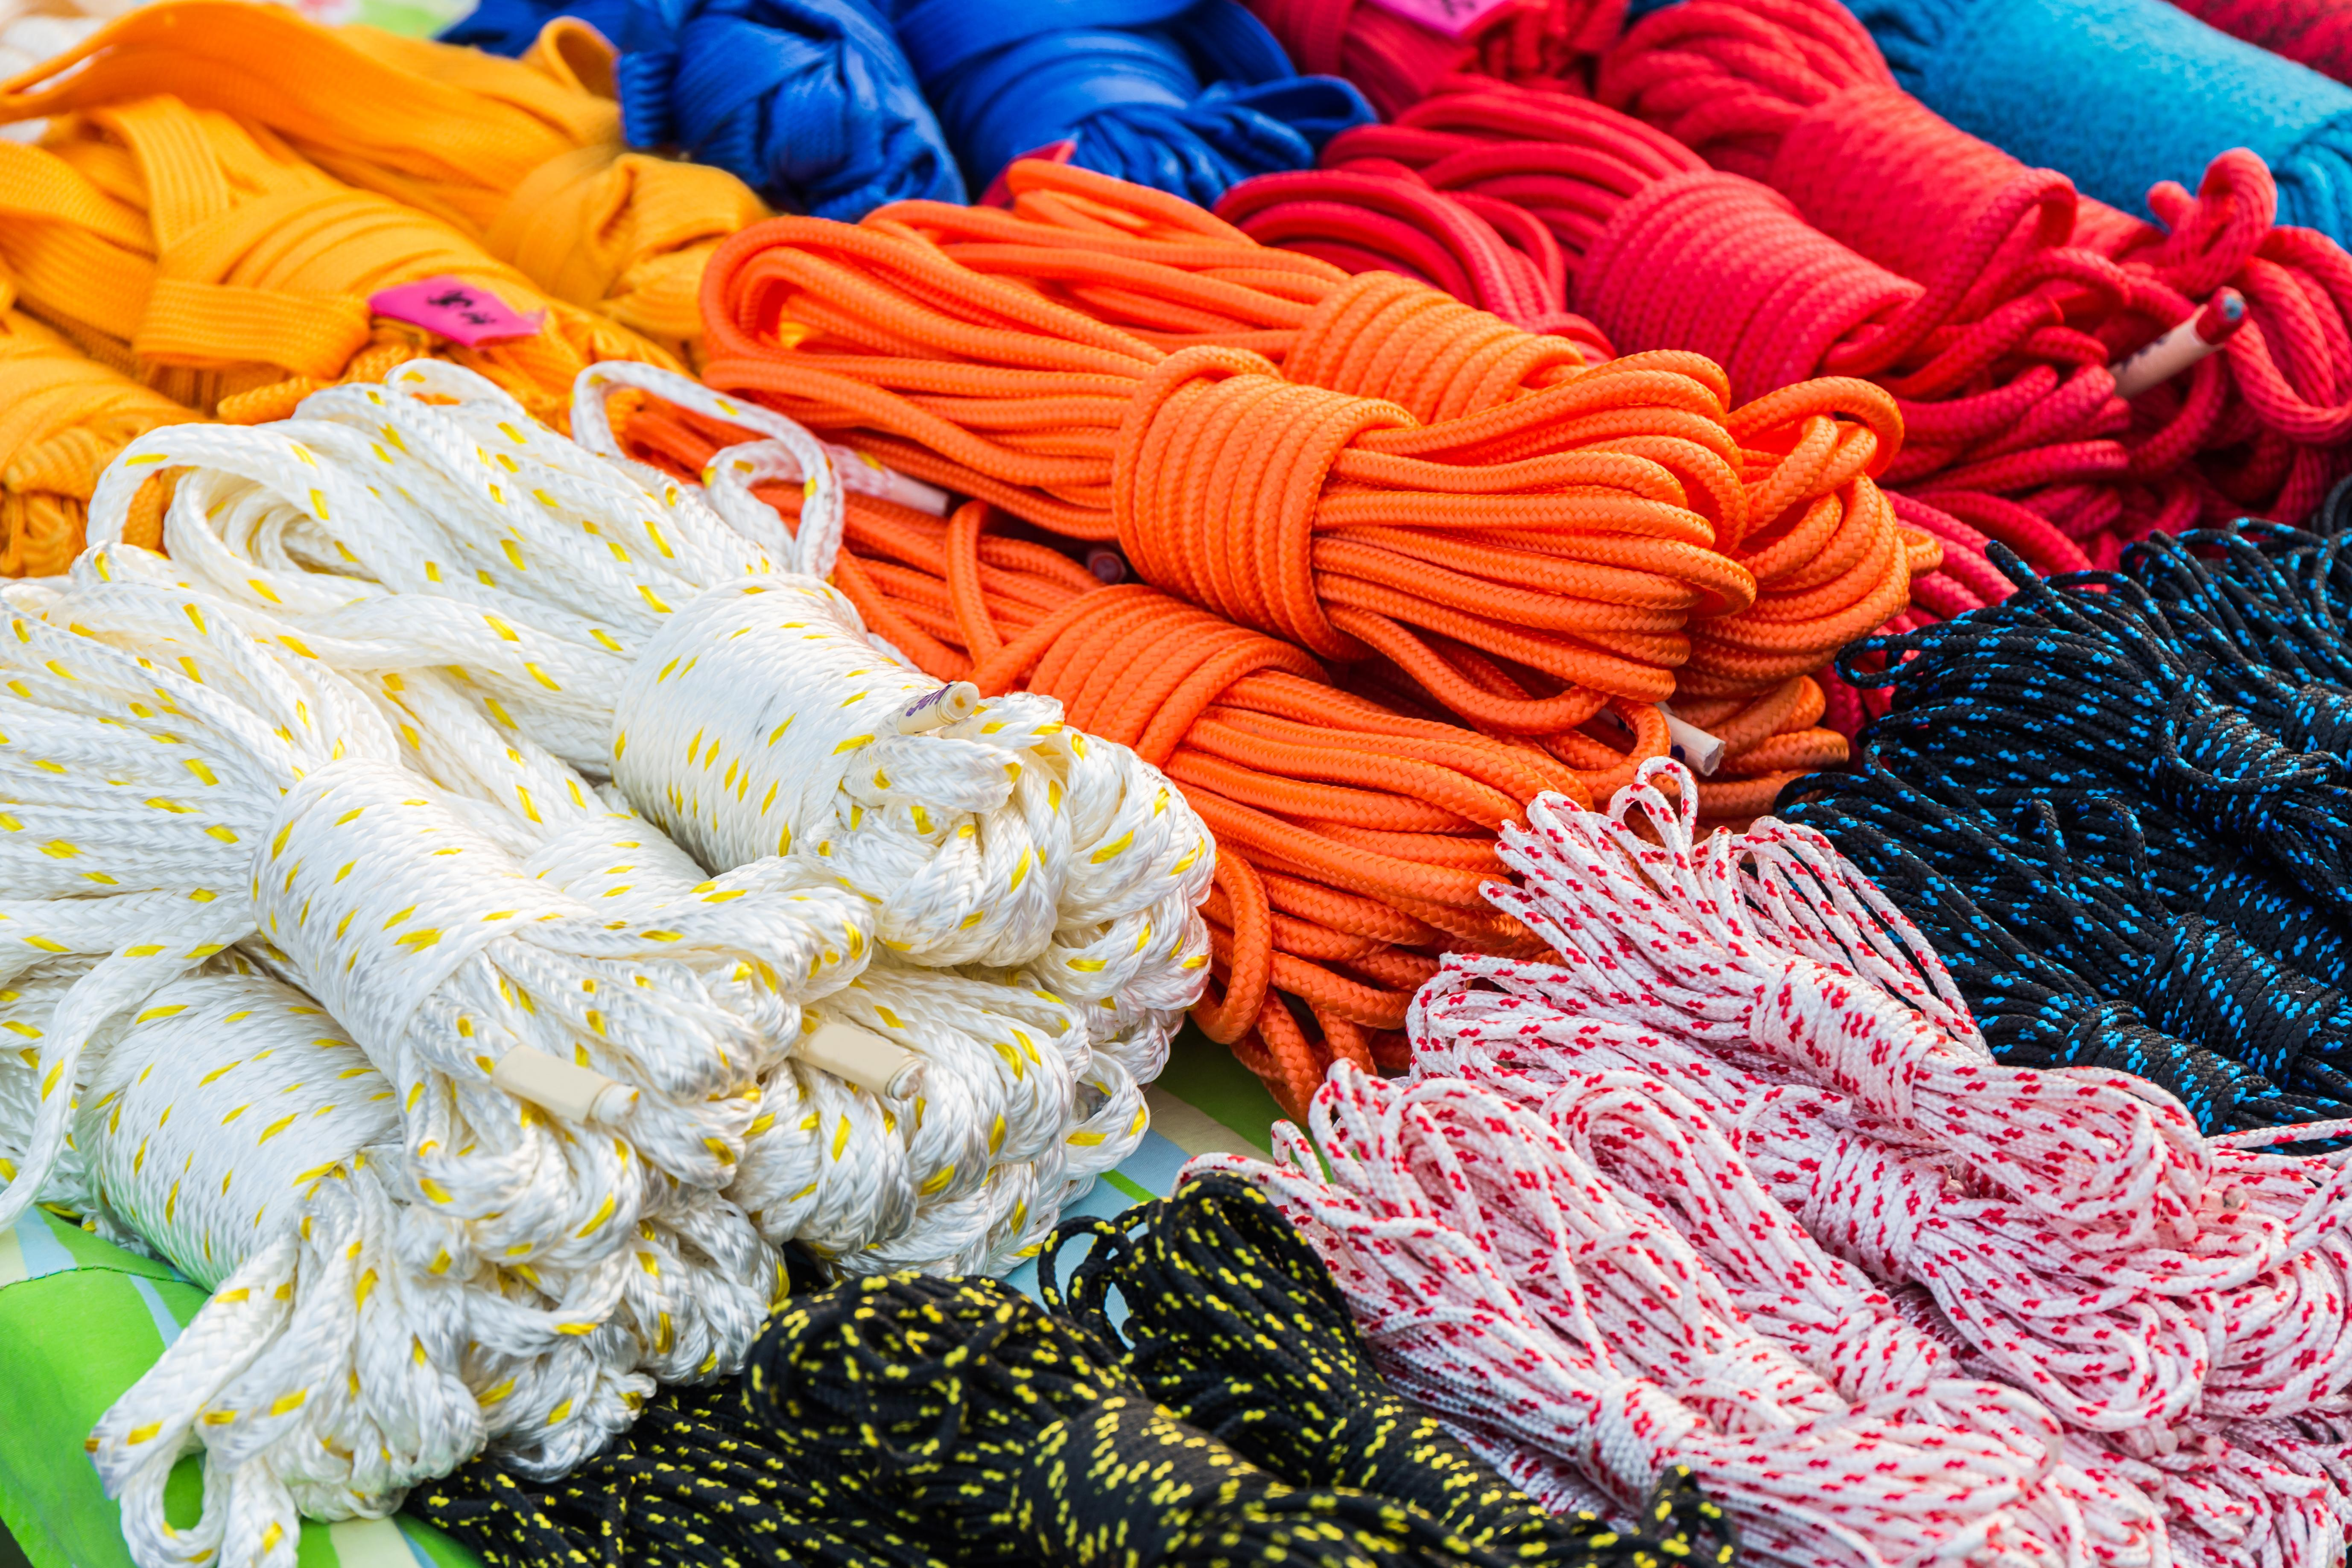 Several colourful types of industrial rope.